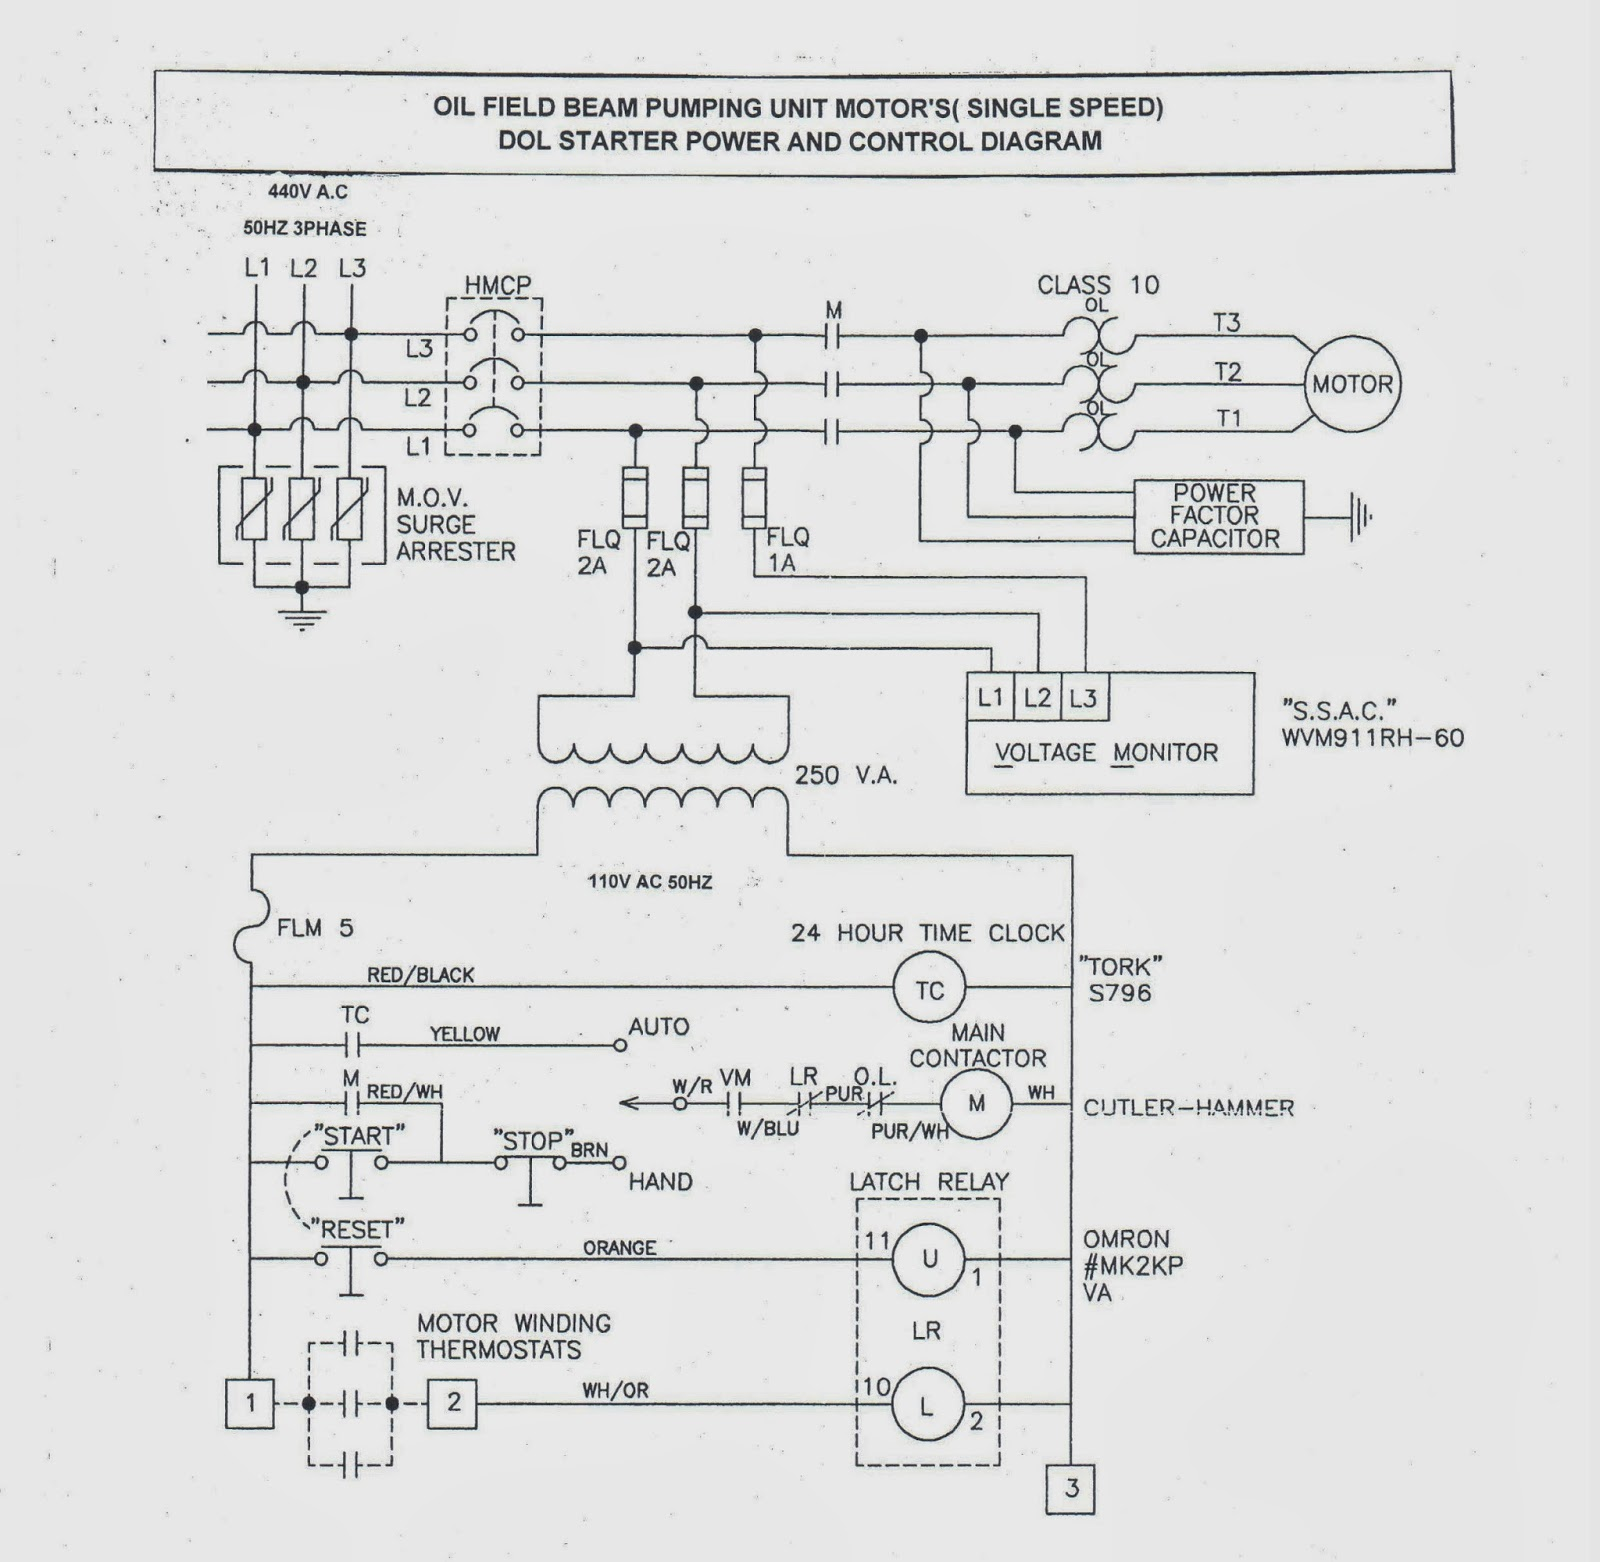 medium resolution of oil field beam pumping unit motor dol starter power and control diagram